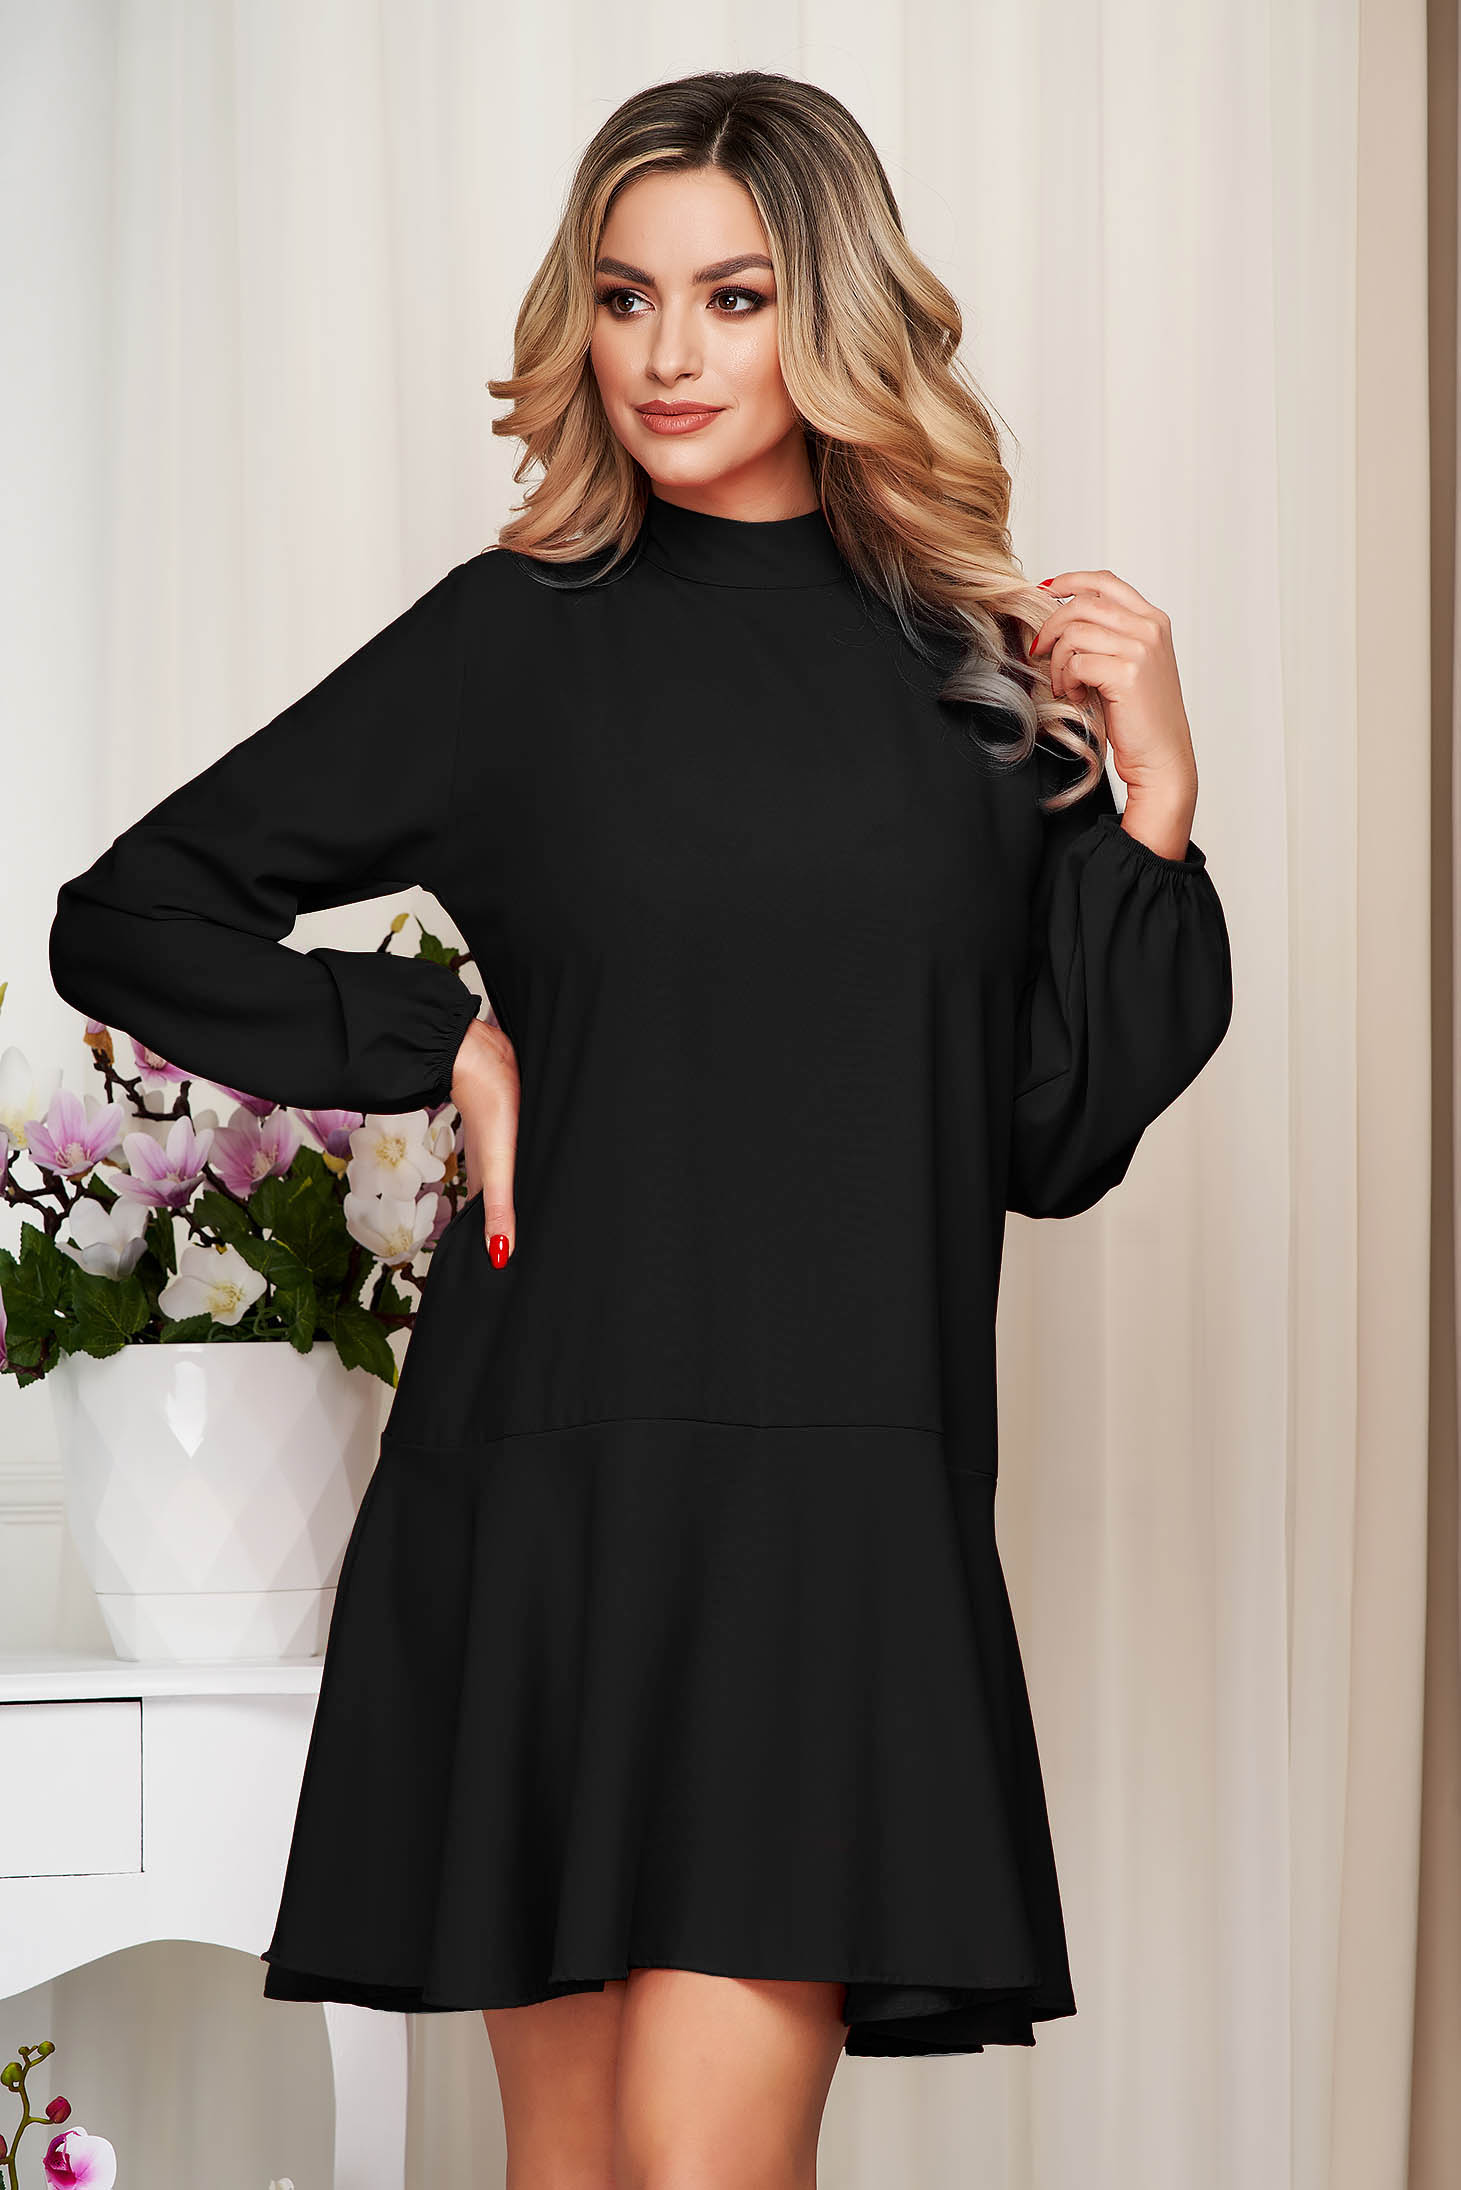 Black dress loose fit with ruffle details with turtle neck